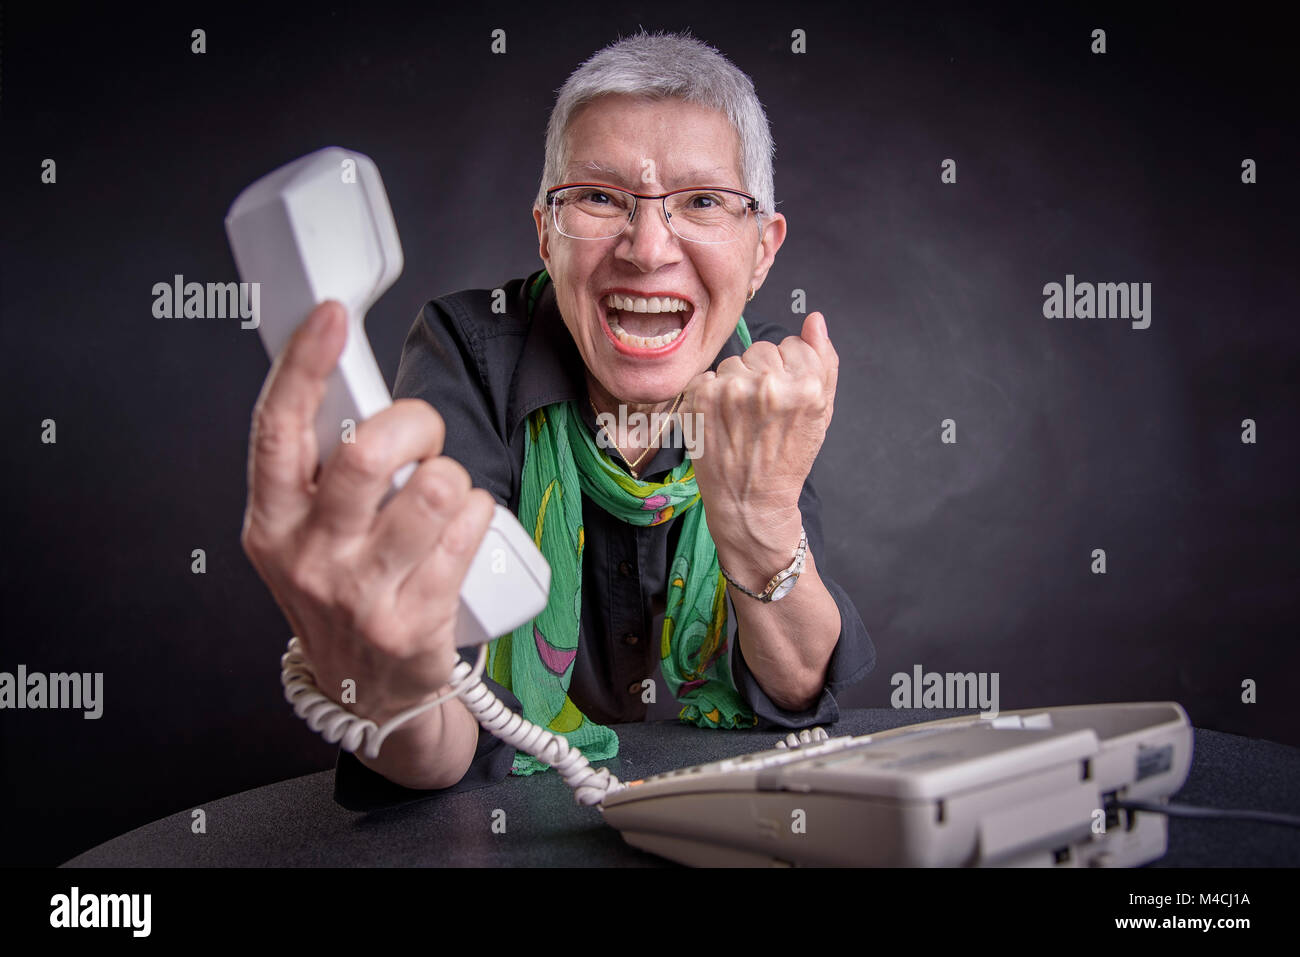 Terrible service, angry senior woman yelling at phone - Stock Image